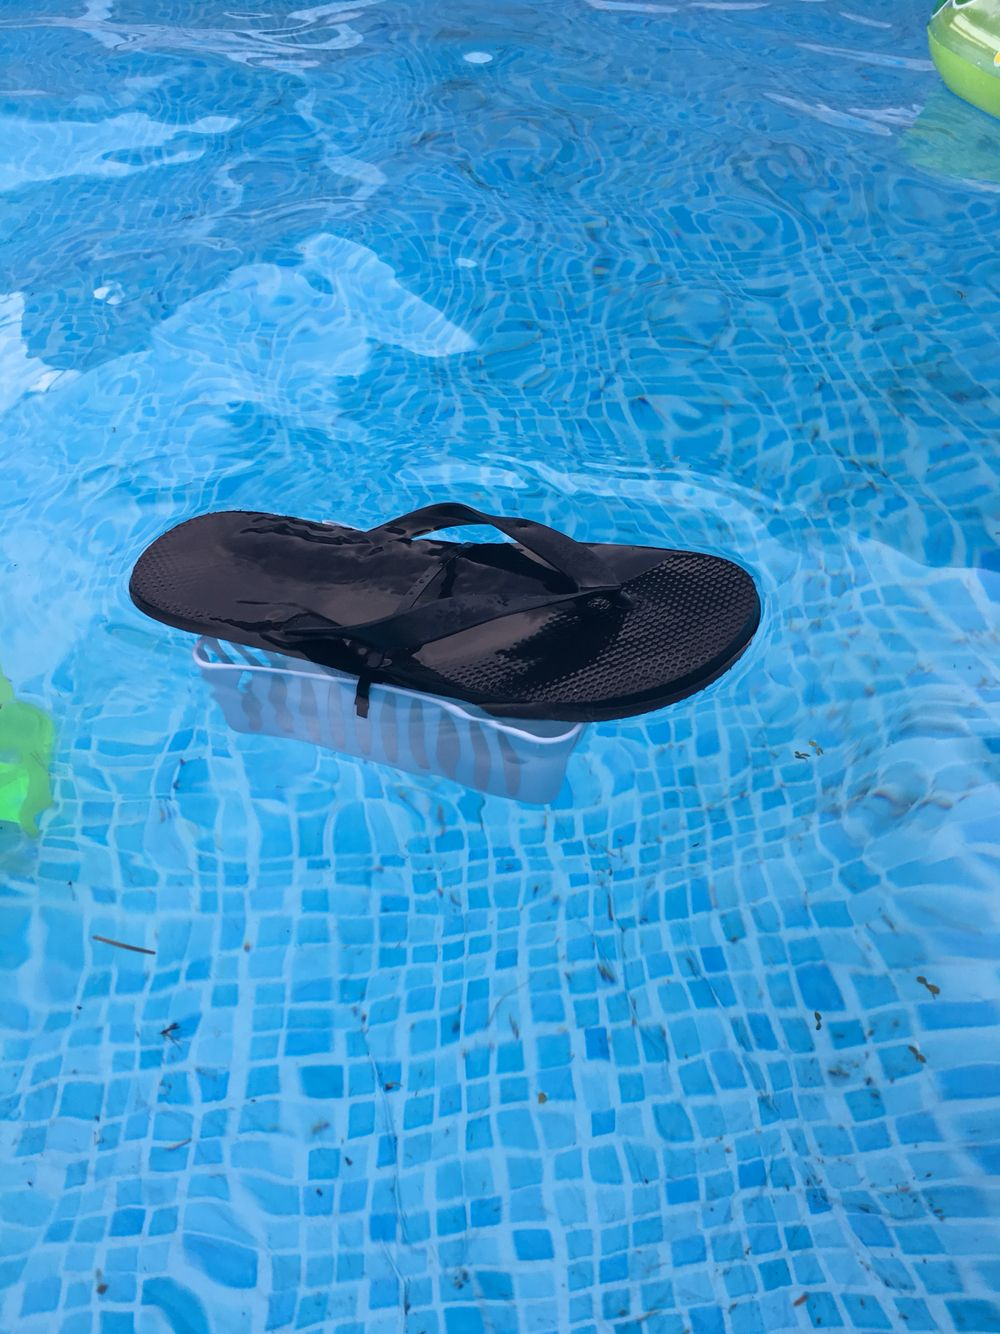 Diy Floating Chlorine Dispenser For A Swimming Pool Zip Tie A Small Plastic Basket To A Flip Flop Diy Swimming Pool Pool Chlorine Pool Cleaning Tips